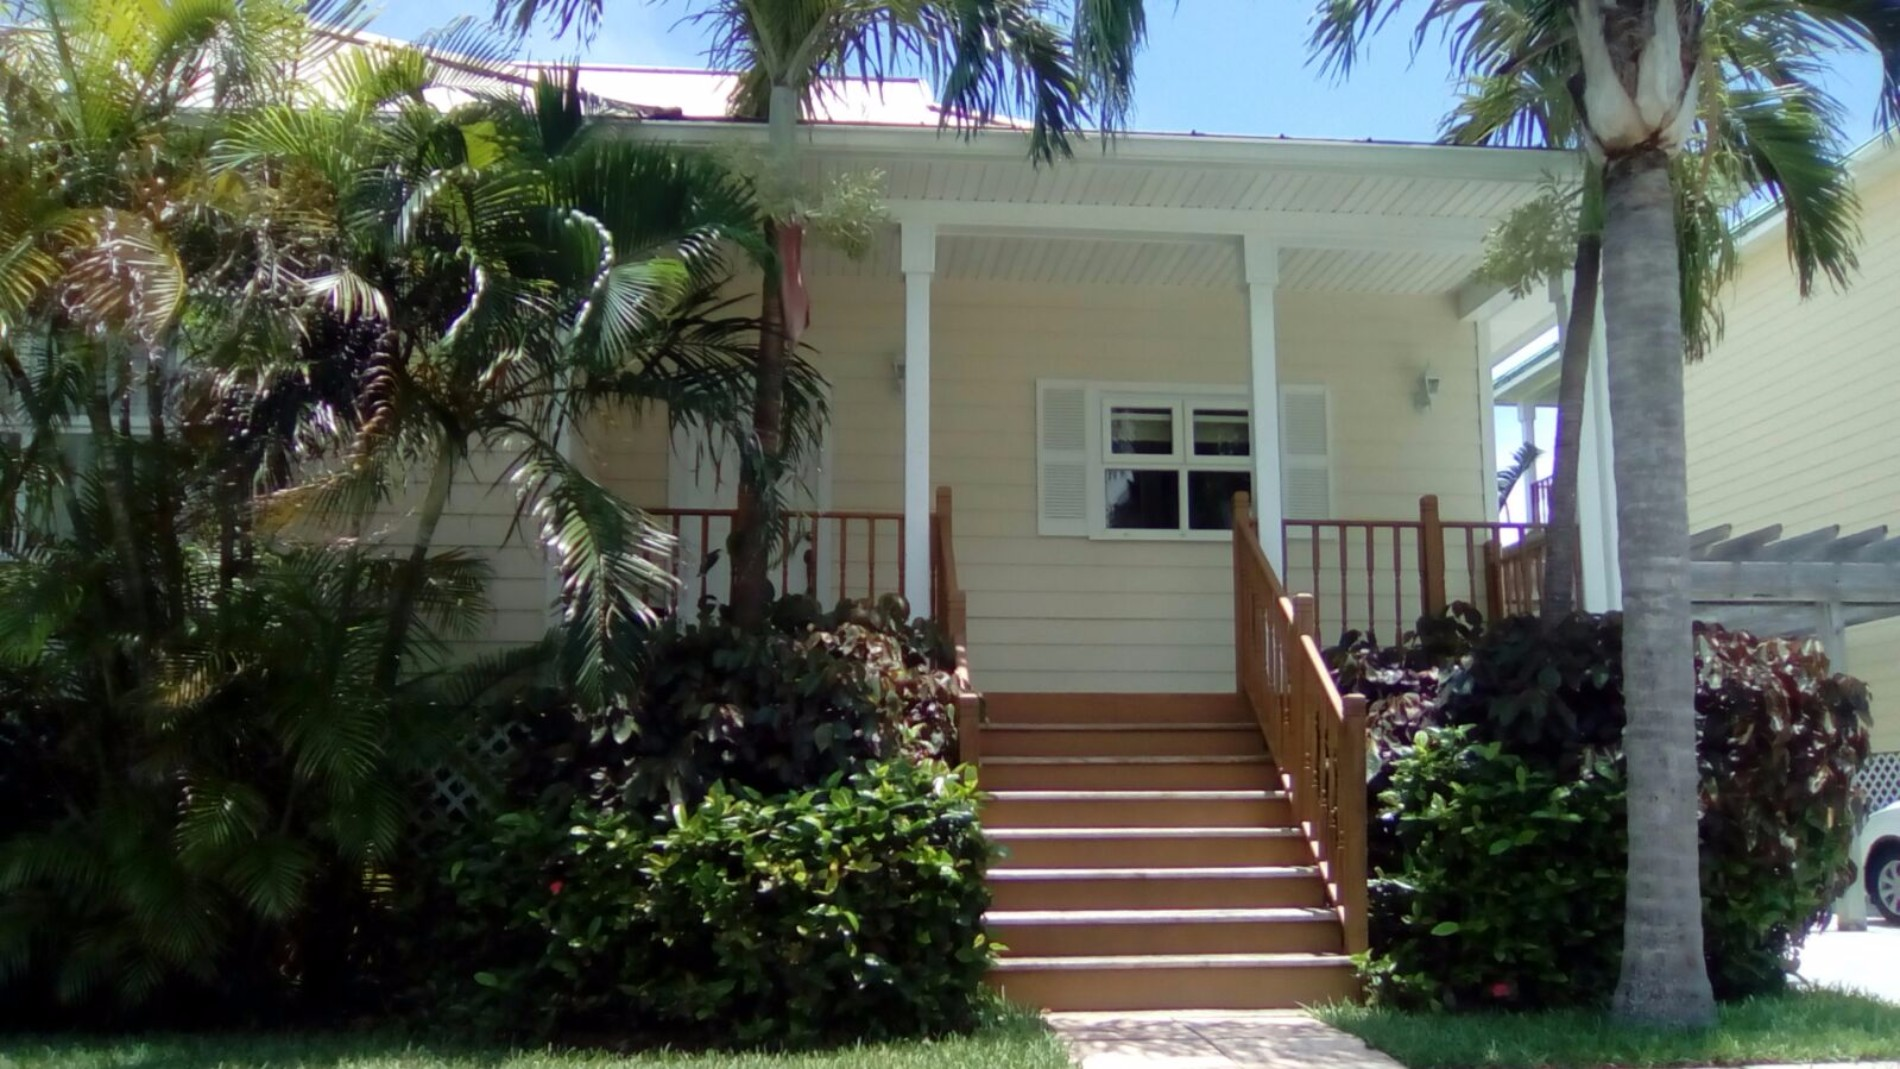 Single Family Home for Sale at Lovely Steal of a Deal home in Shoreline!- MLS 28952 Fortune Bay, Grand Bahama, Bahamas